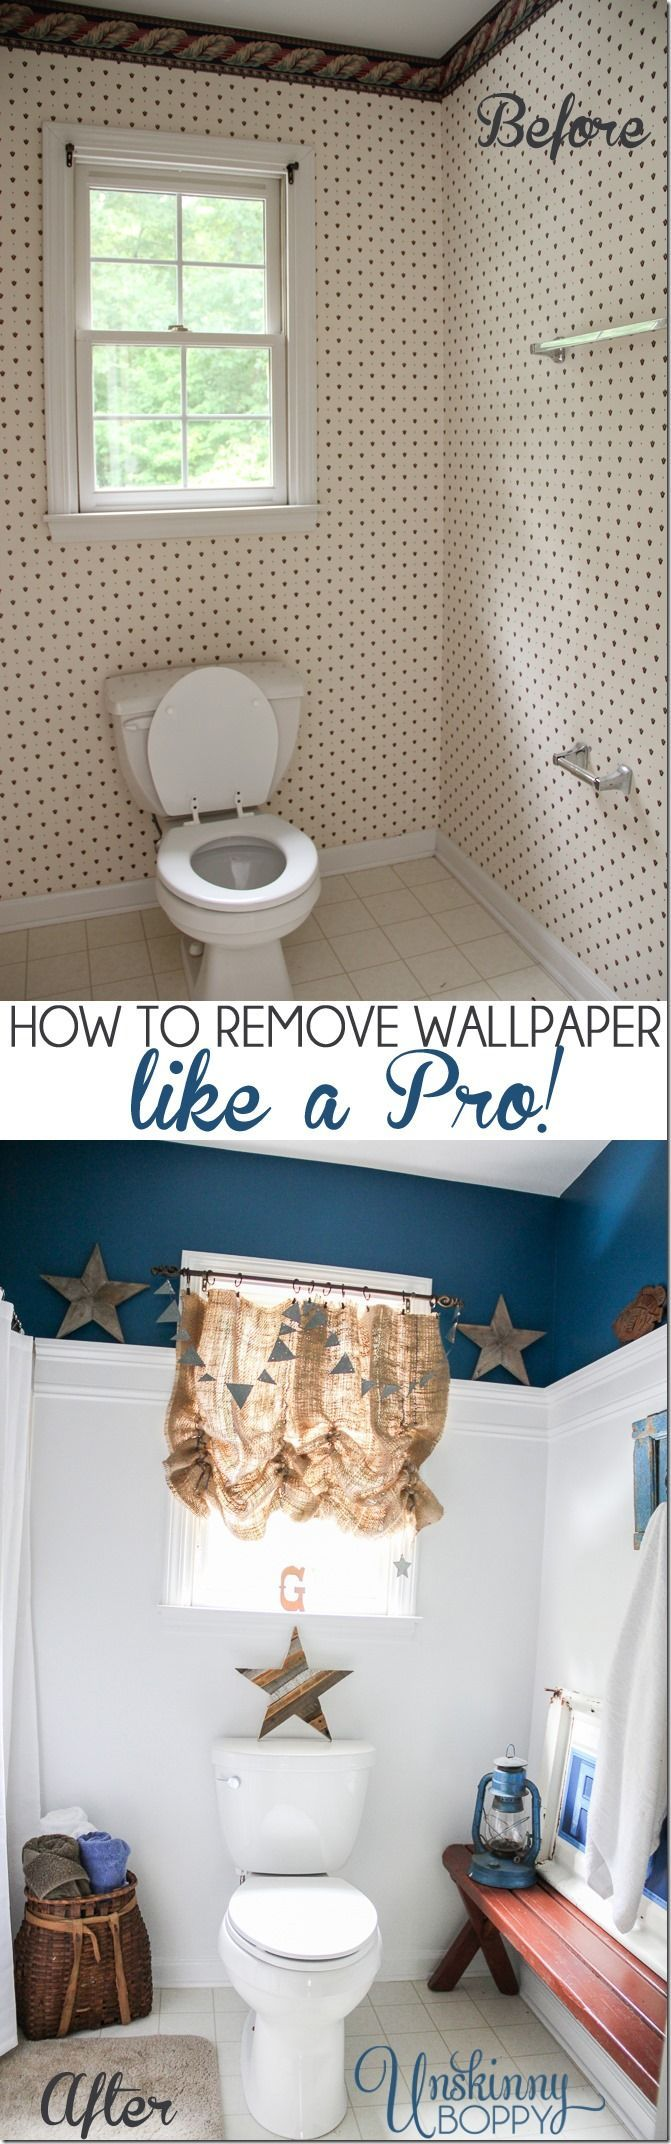 How to Remove Wallpaper like a pro with Unskinny Boppy